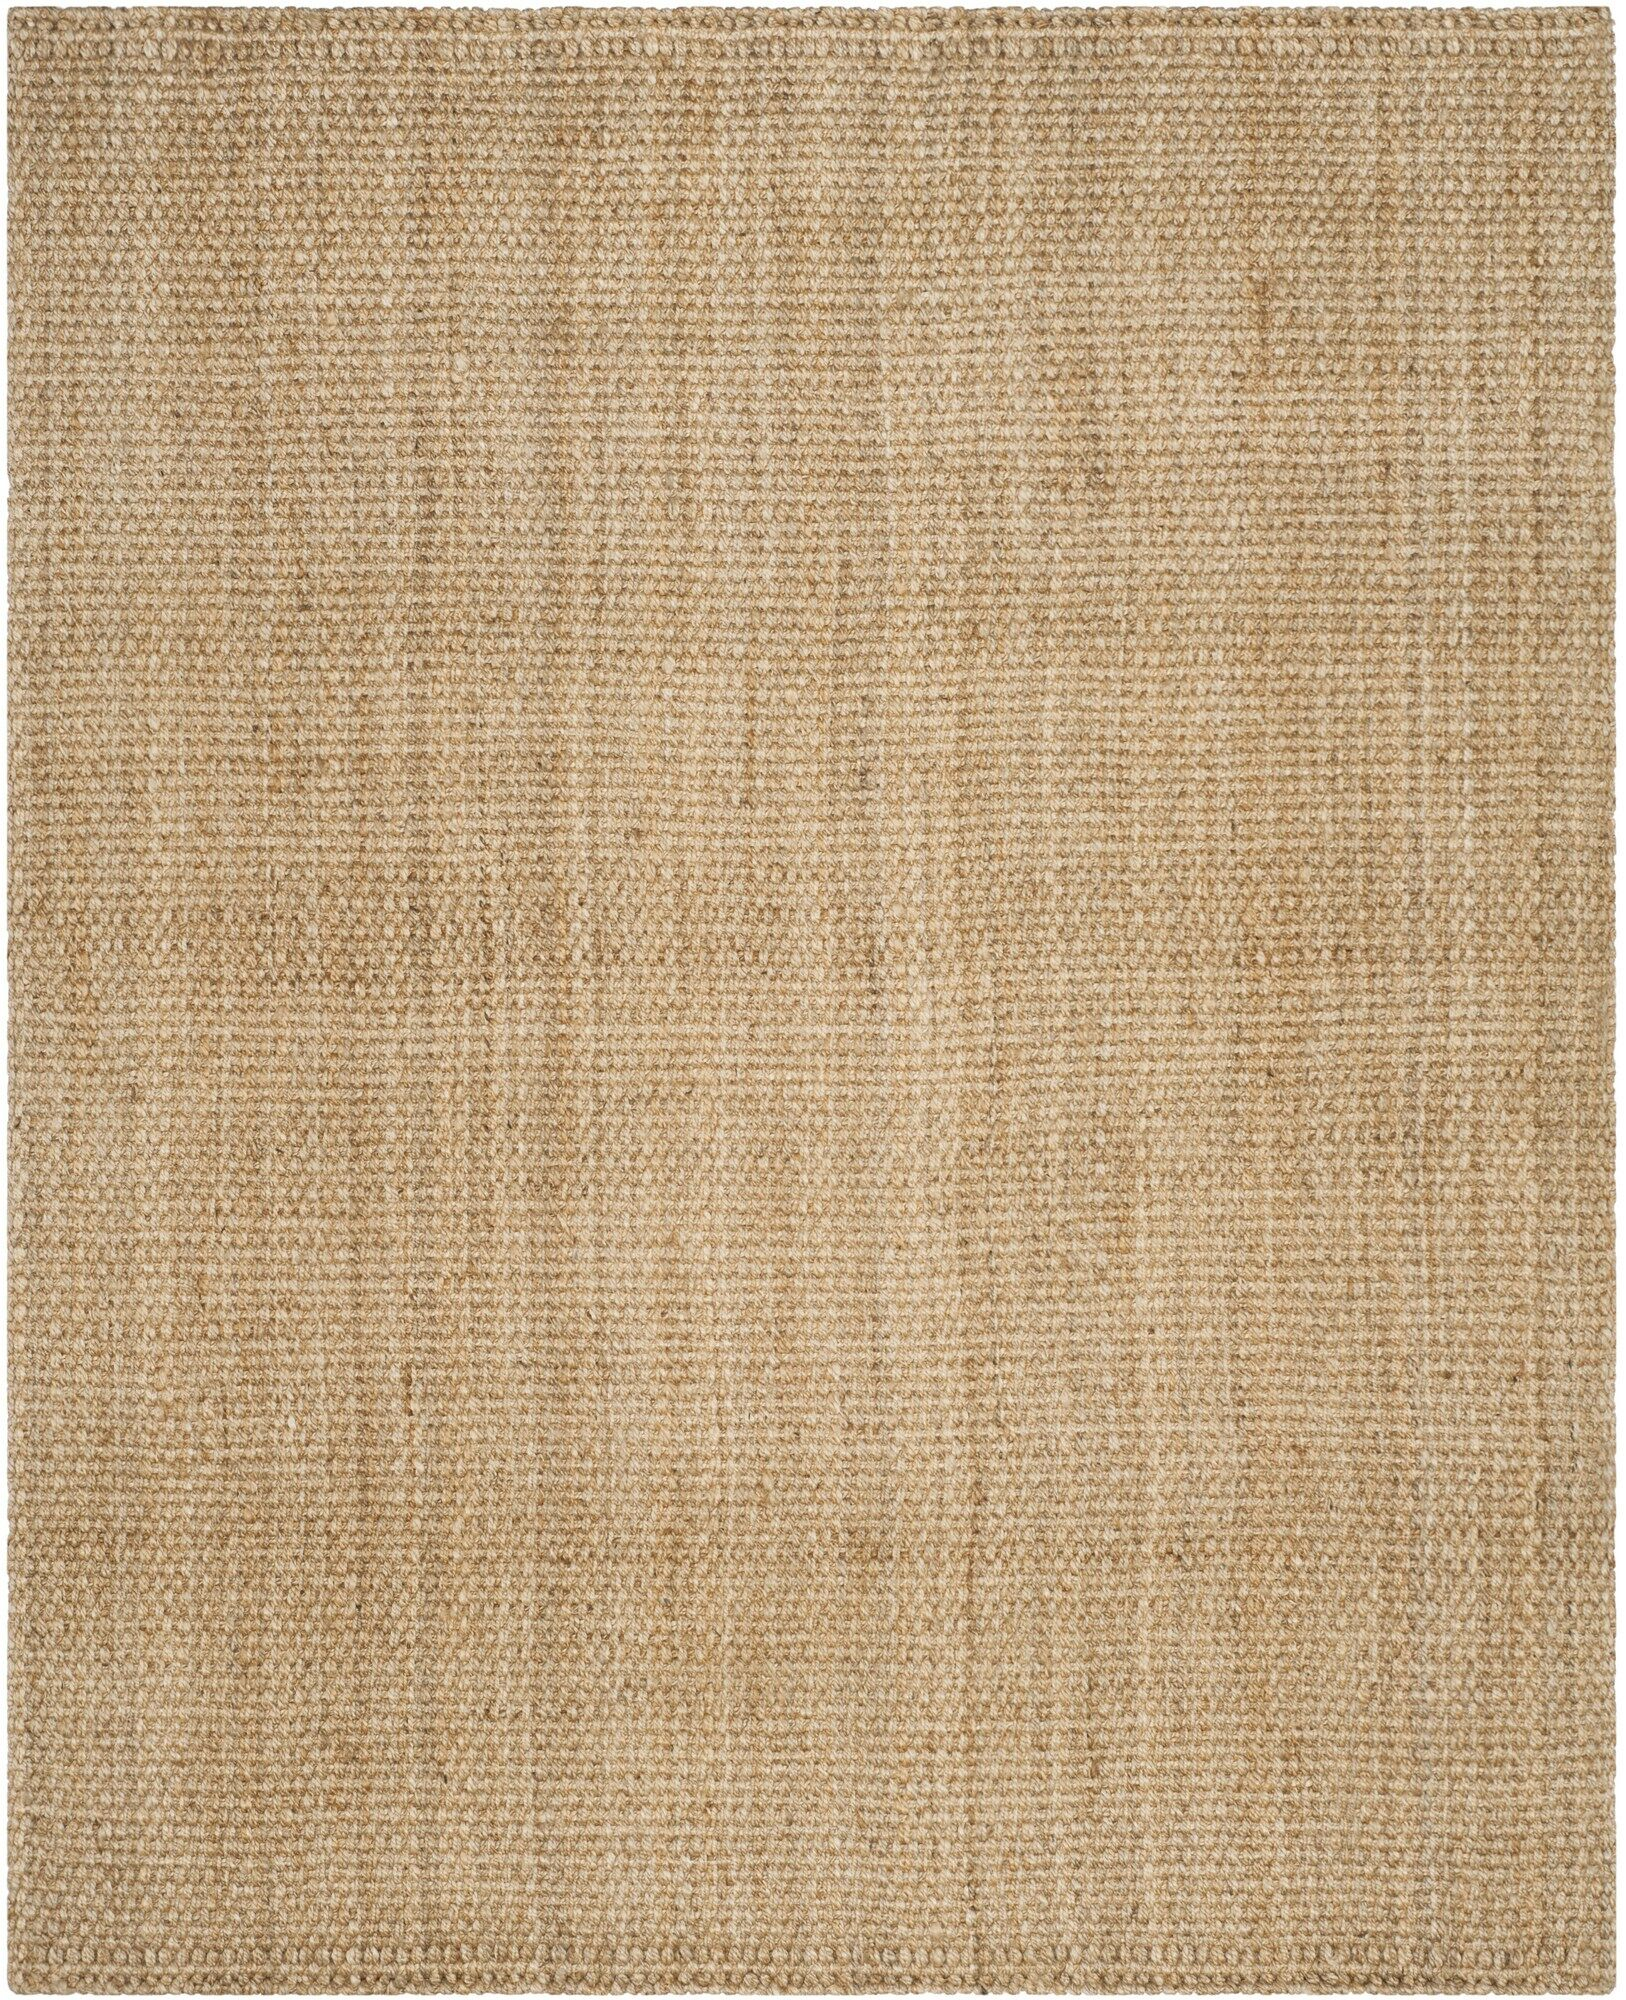 Addilyn Hand-Woven Natural Area Rug Rug Size: Rectangle 10' x 14'